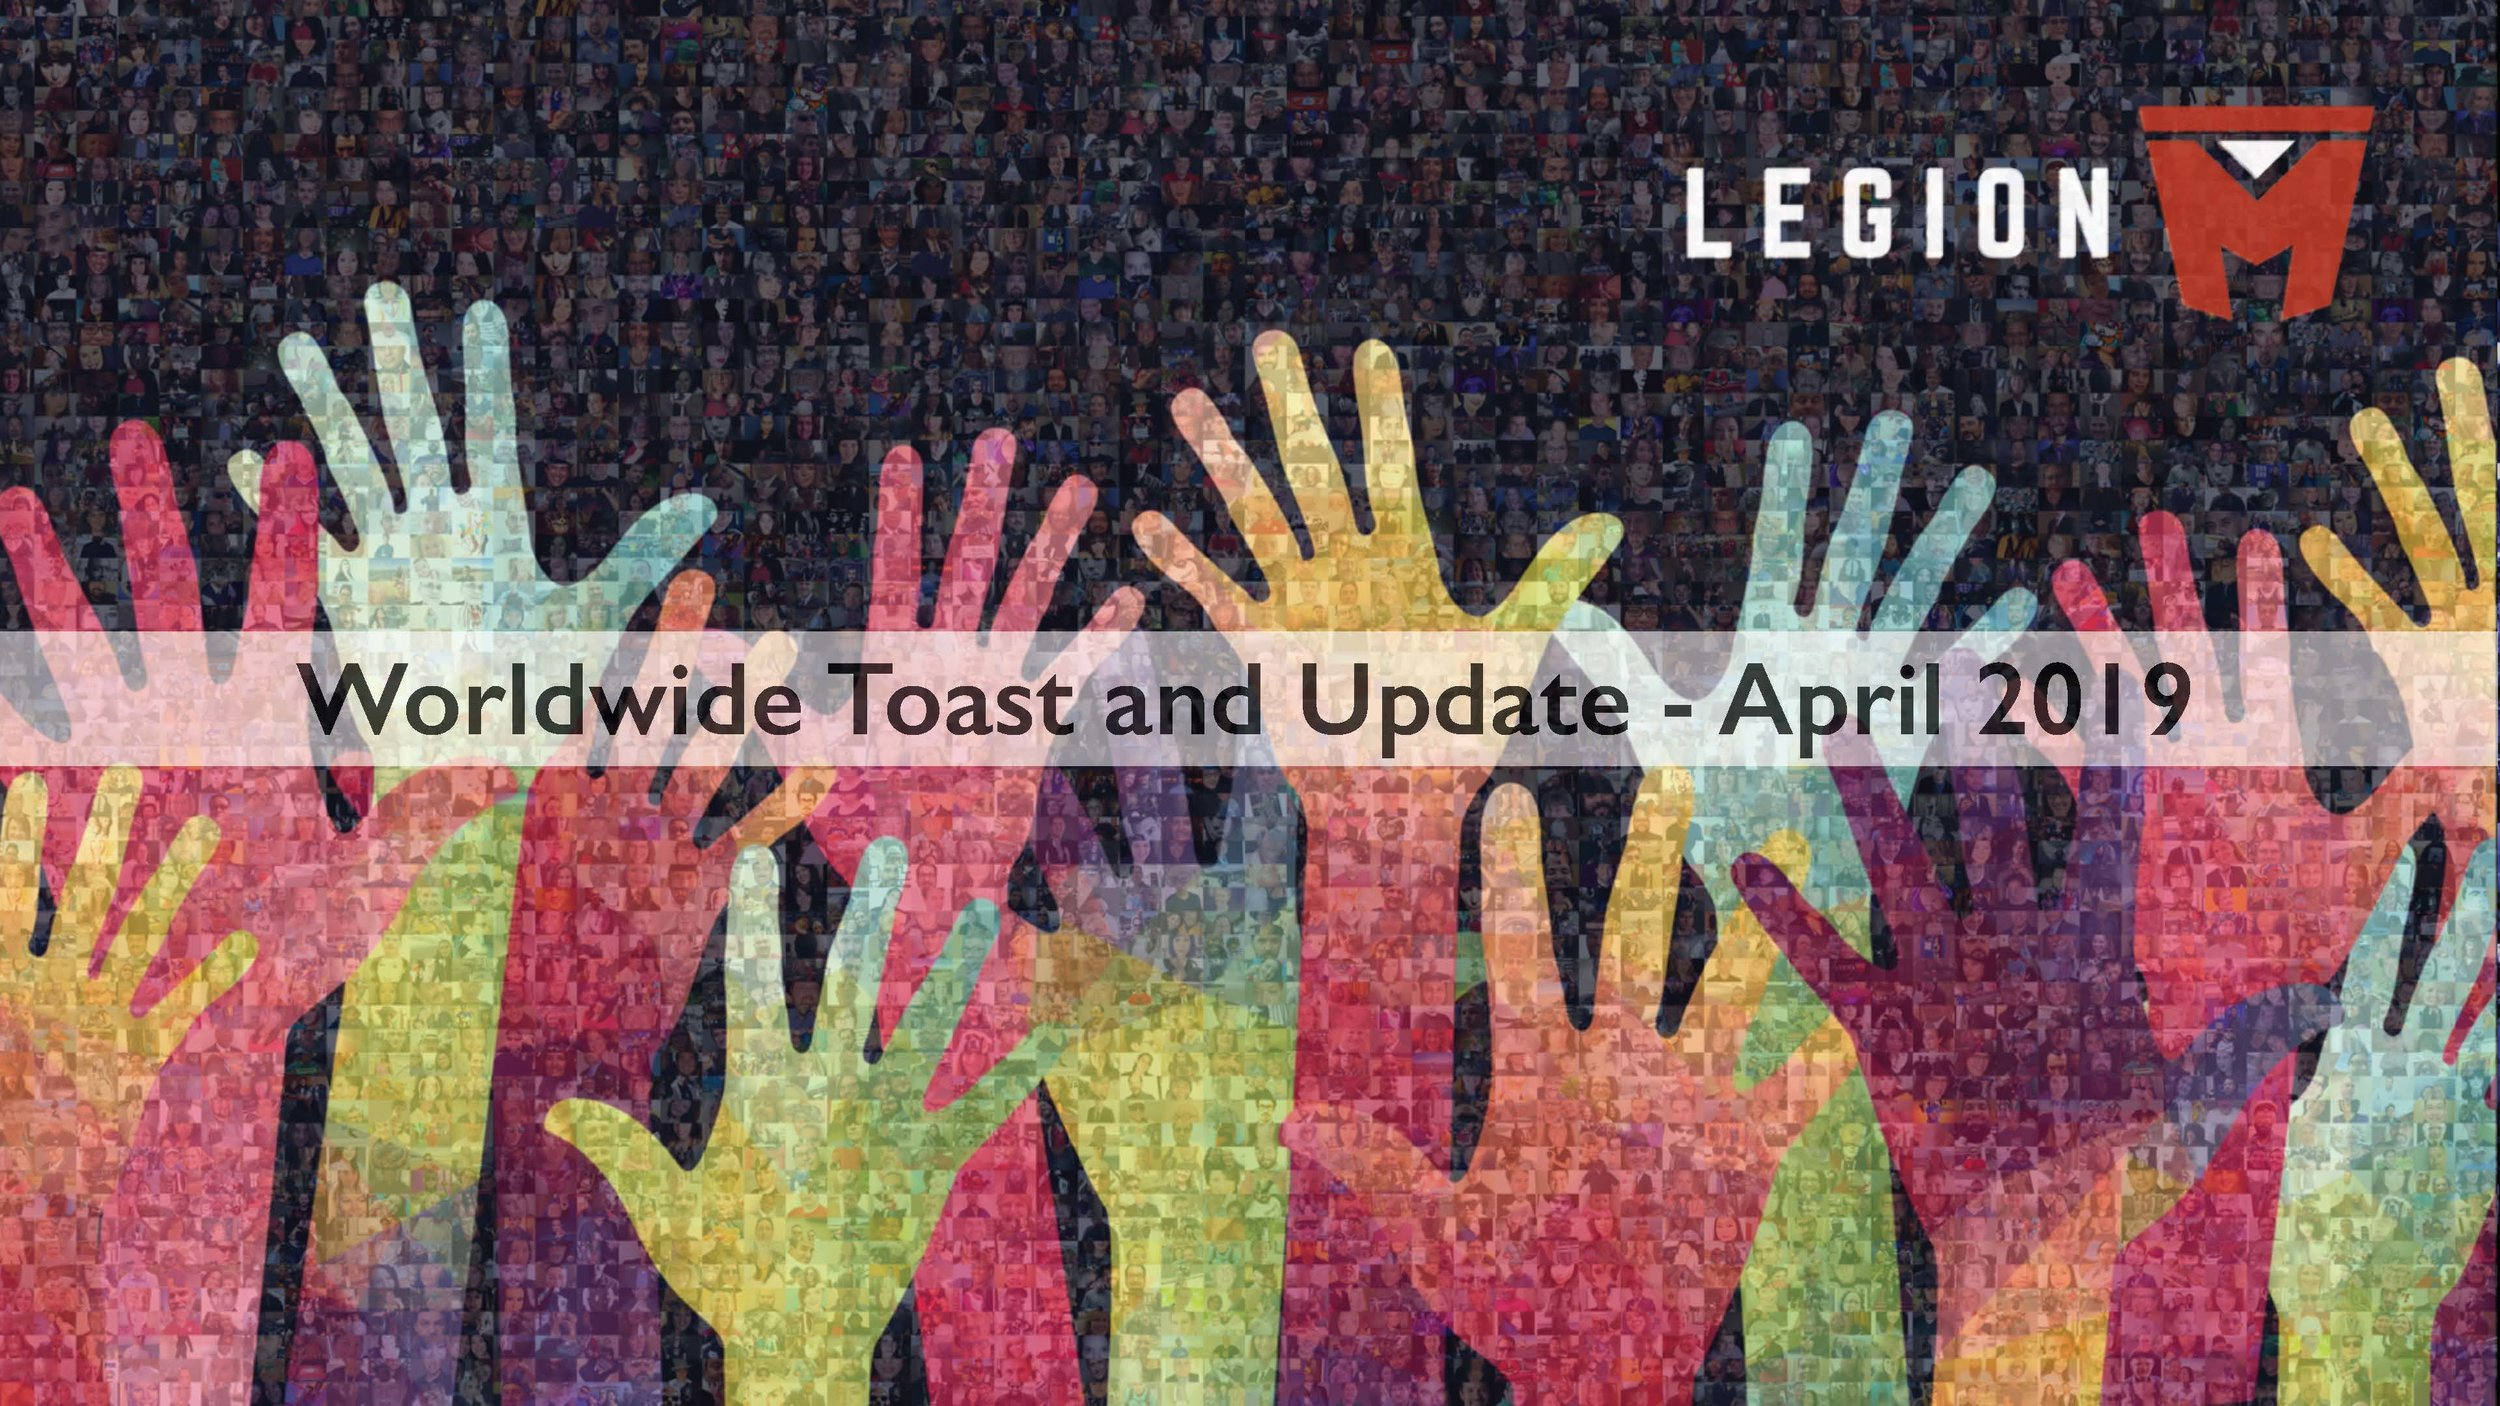 Legion M Worldwide Toast and Update April 2019 - FINAL copy (corrected 2)_Page_1.jpg